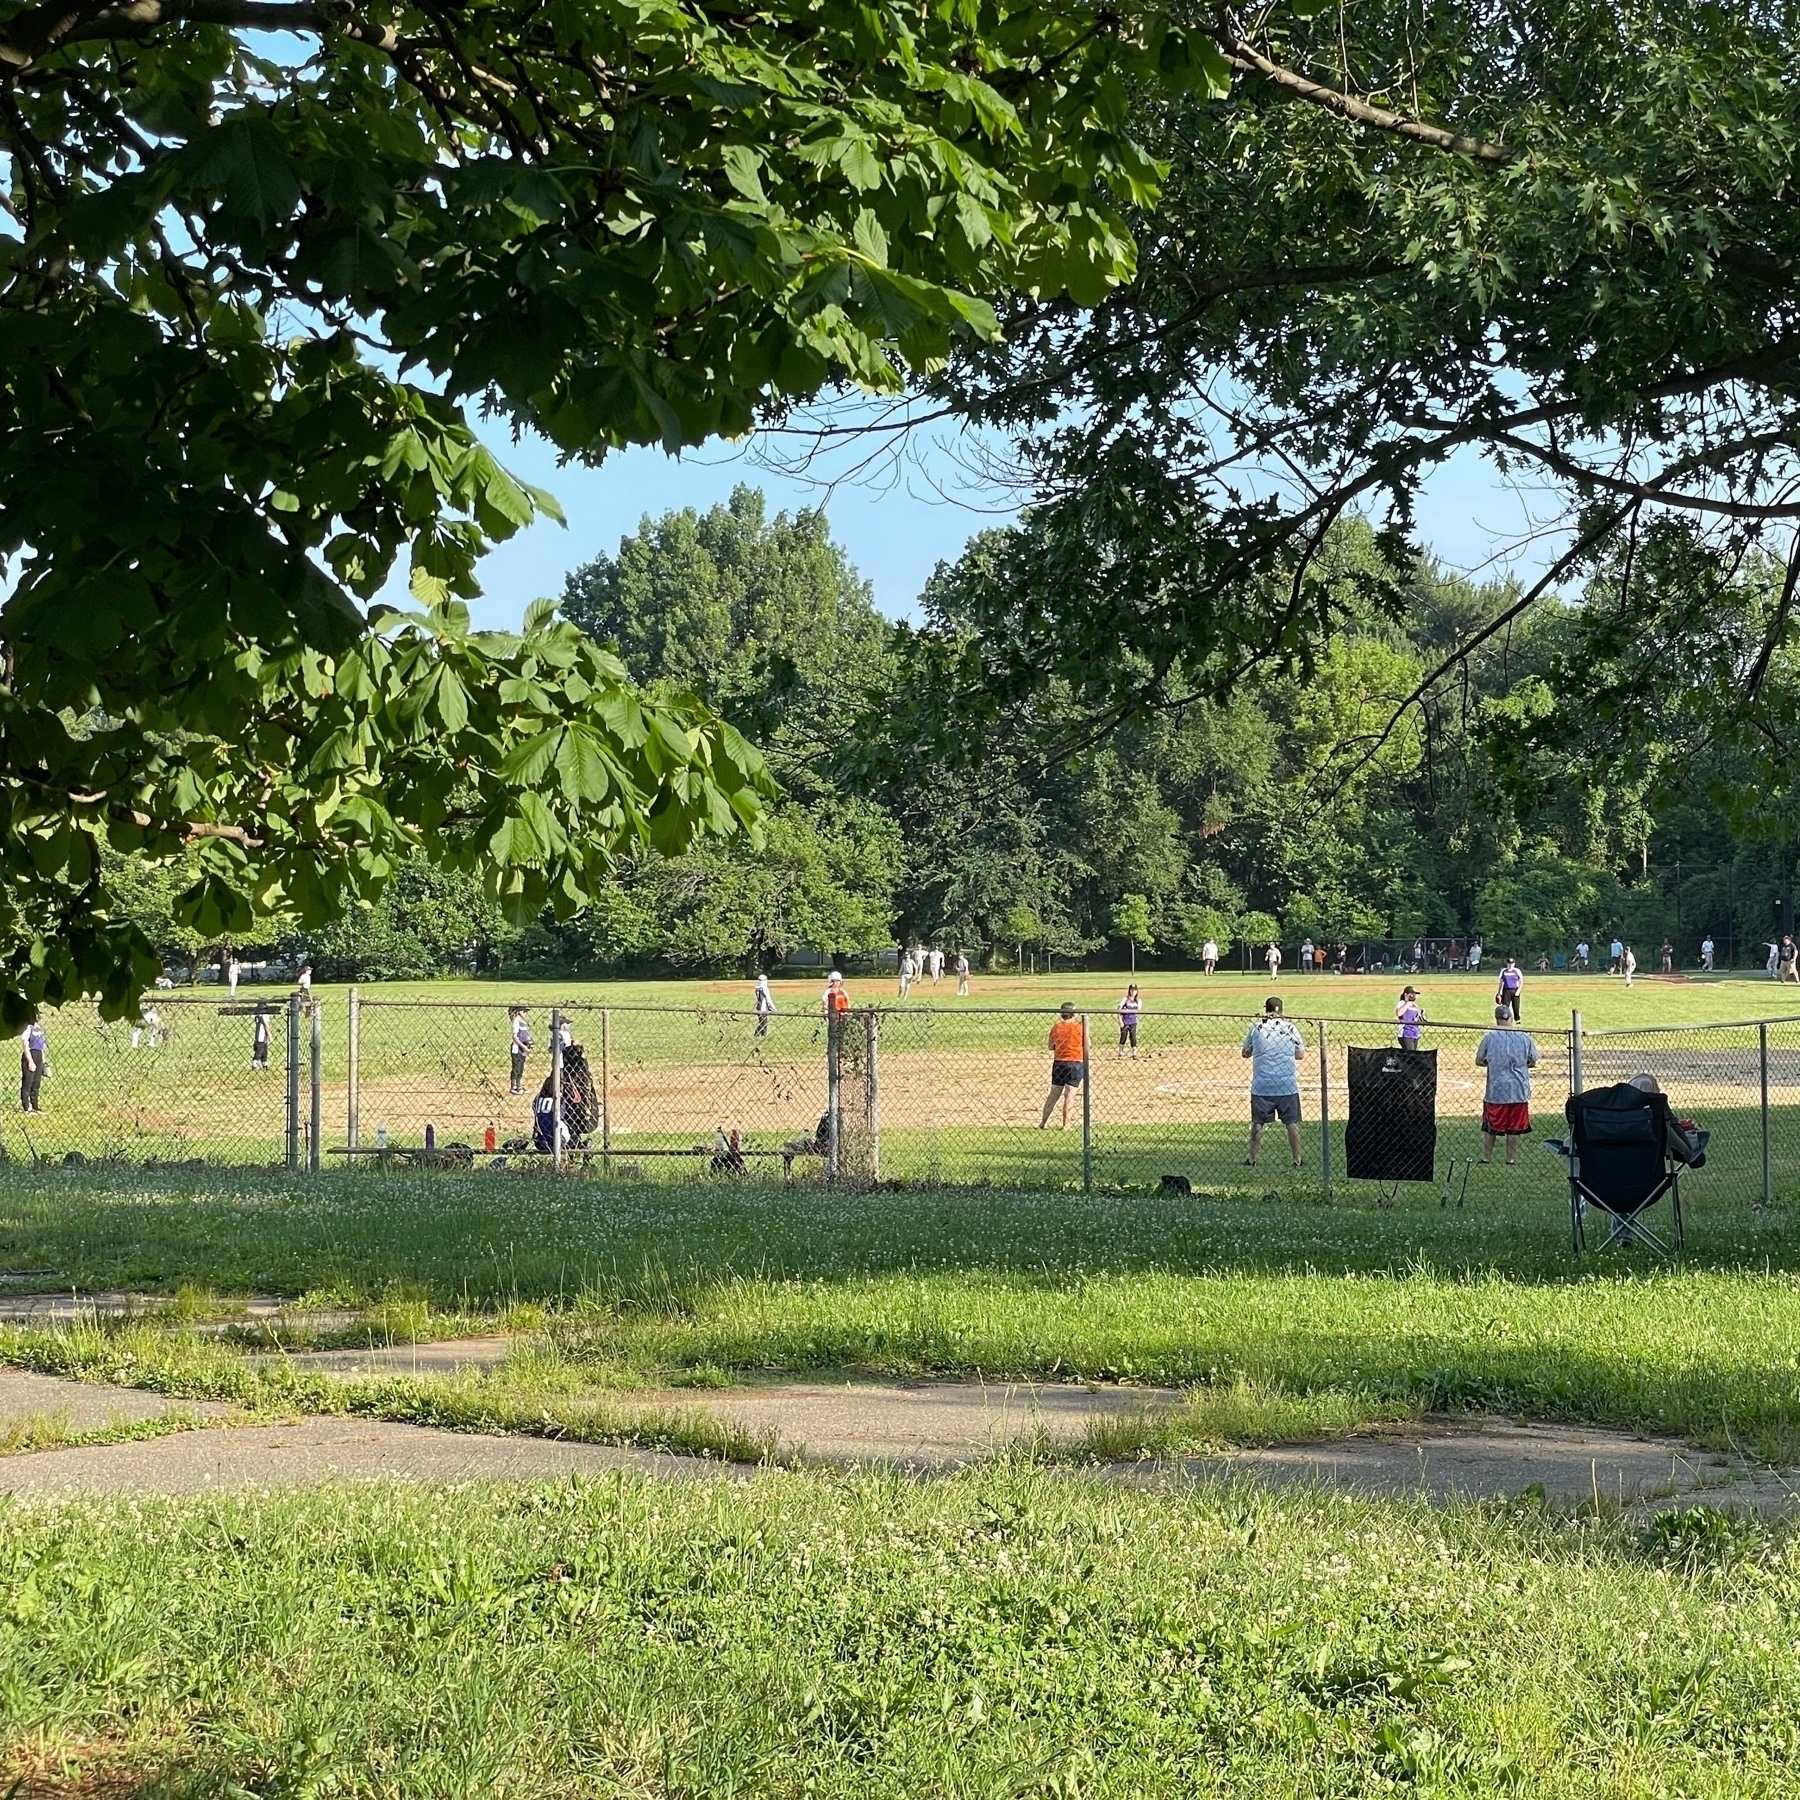 Little leaguers on the fields at Roosevelt Park.